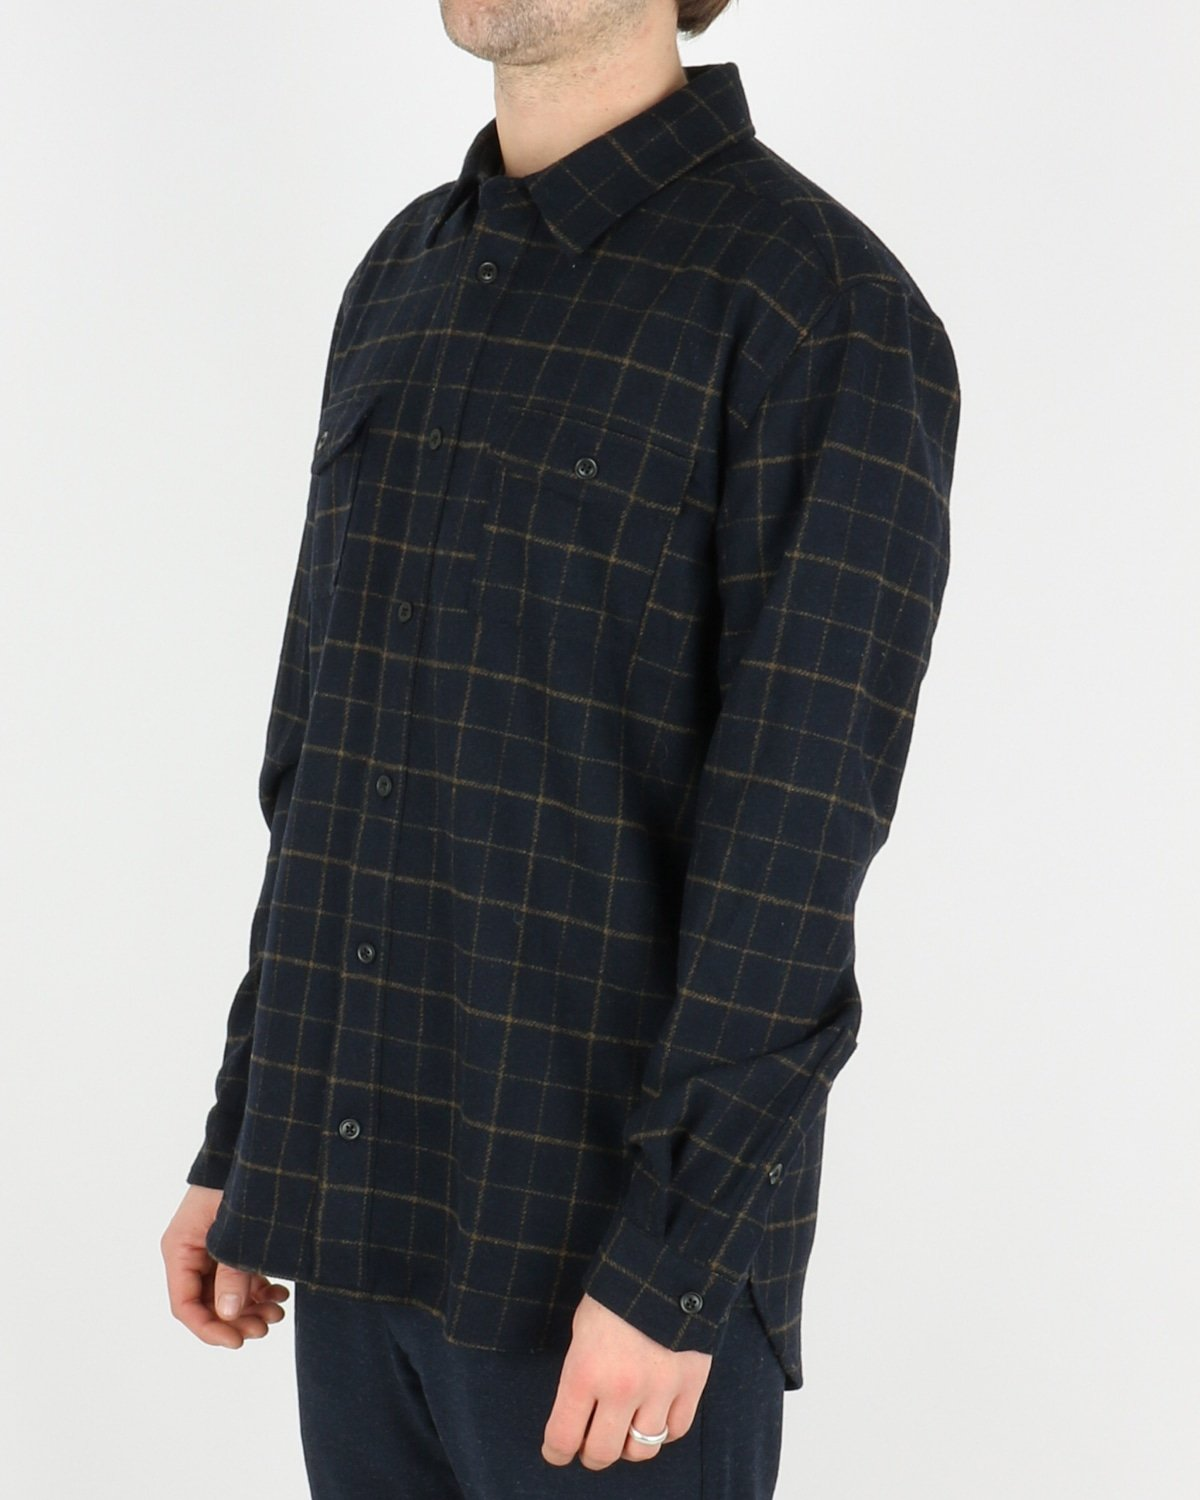 les deux_dines shirt jacket_dark navy_2_4